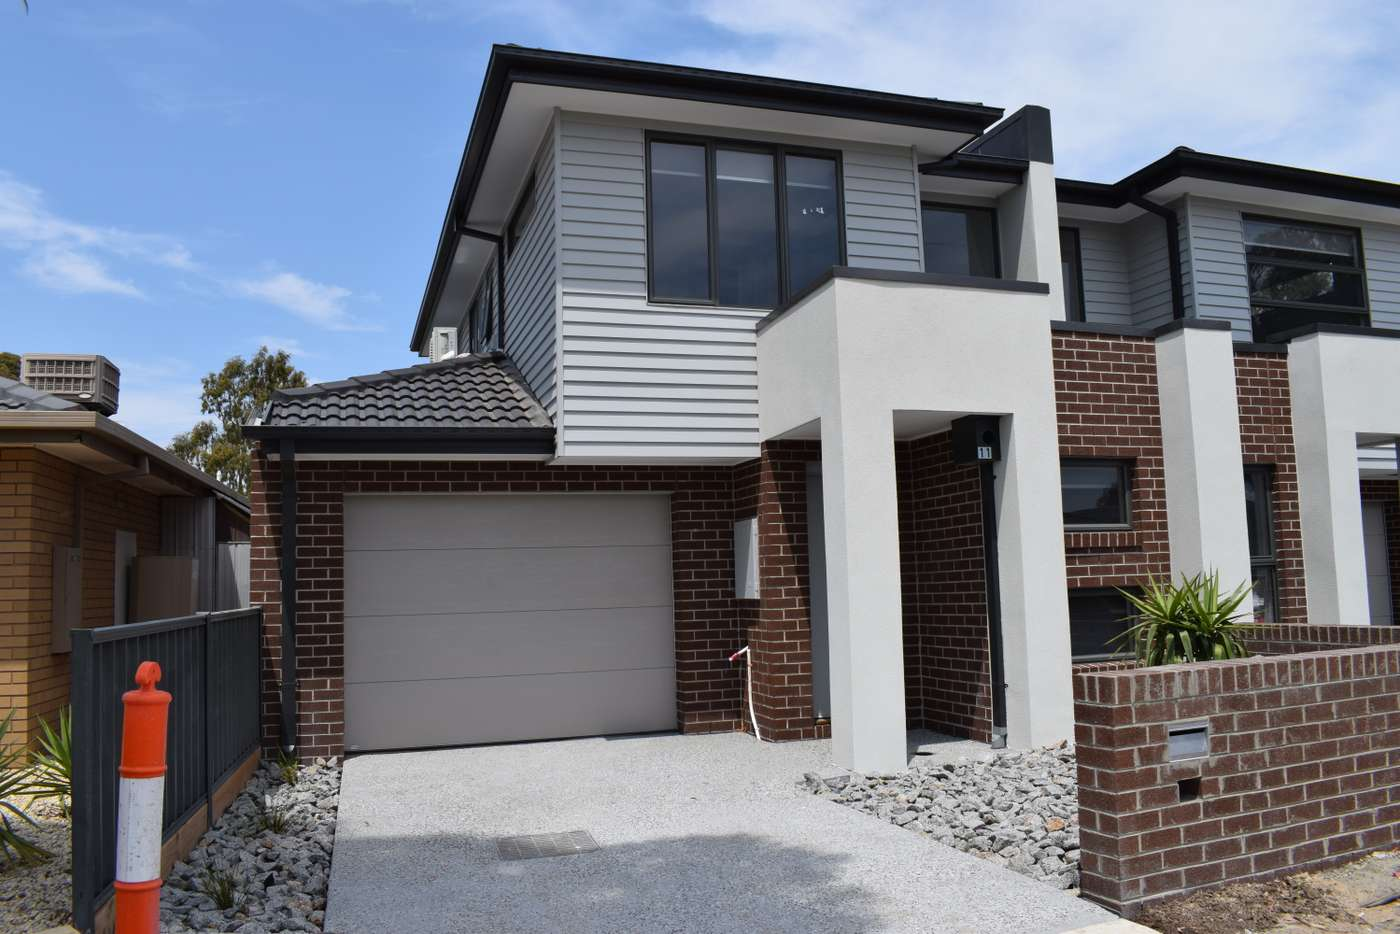 Main view of Homely house listing, 3/38 Tulsa Drive, Sunbury VIC 3429